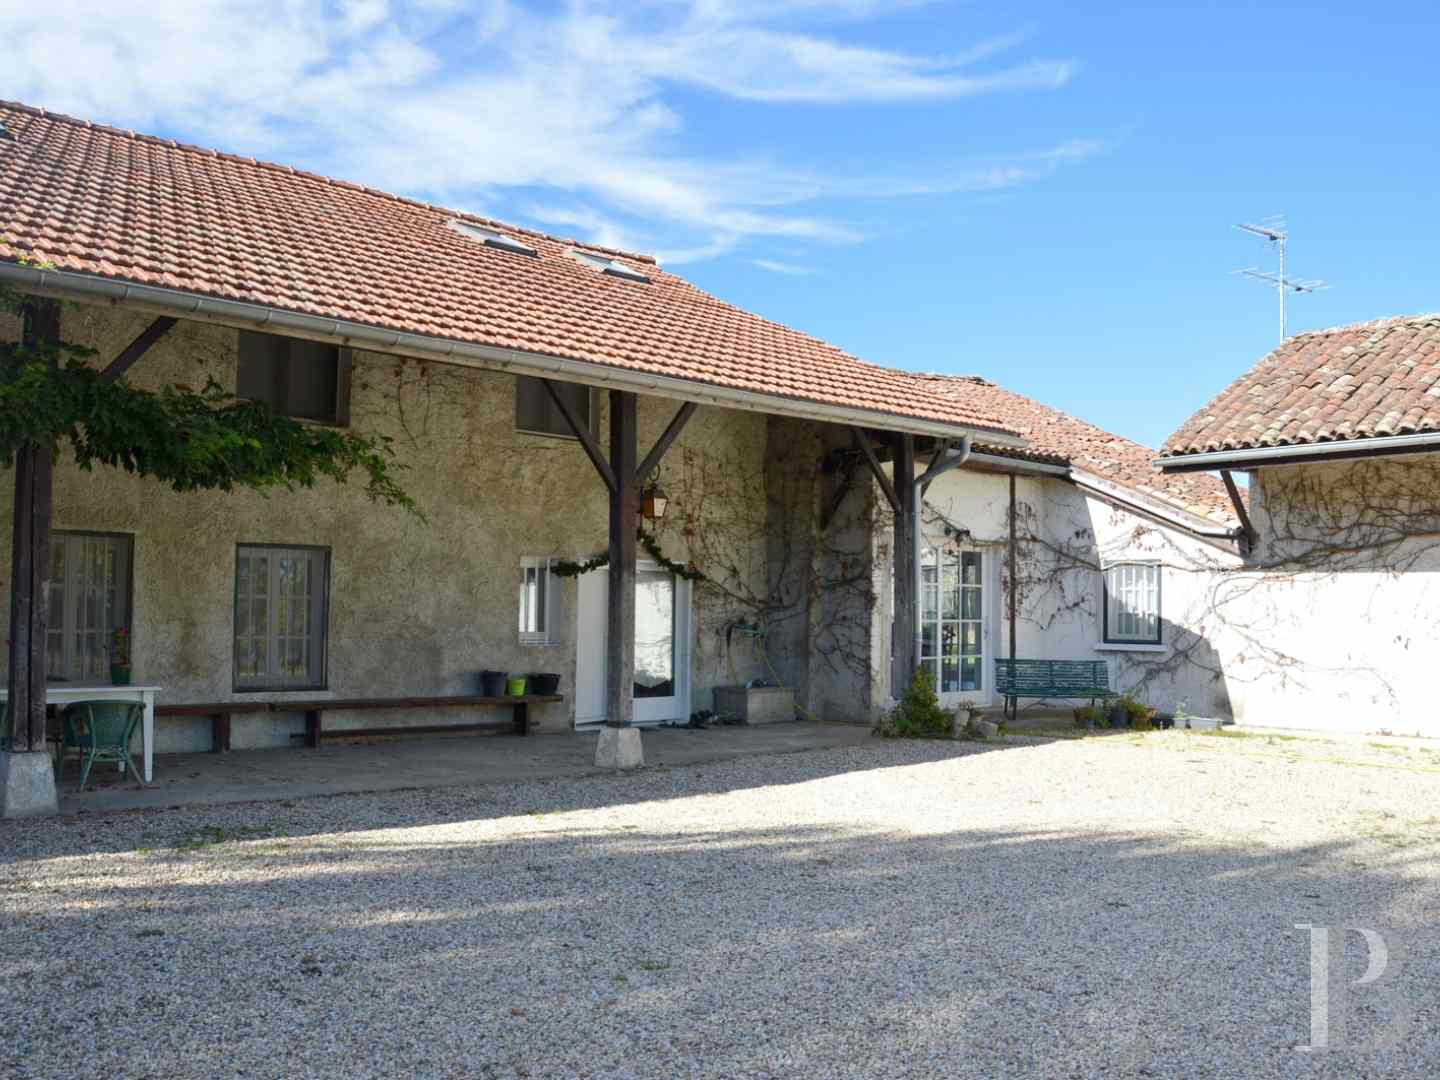 character properties France rhones alps farmhouse renovated - 1 zoom